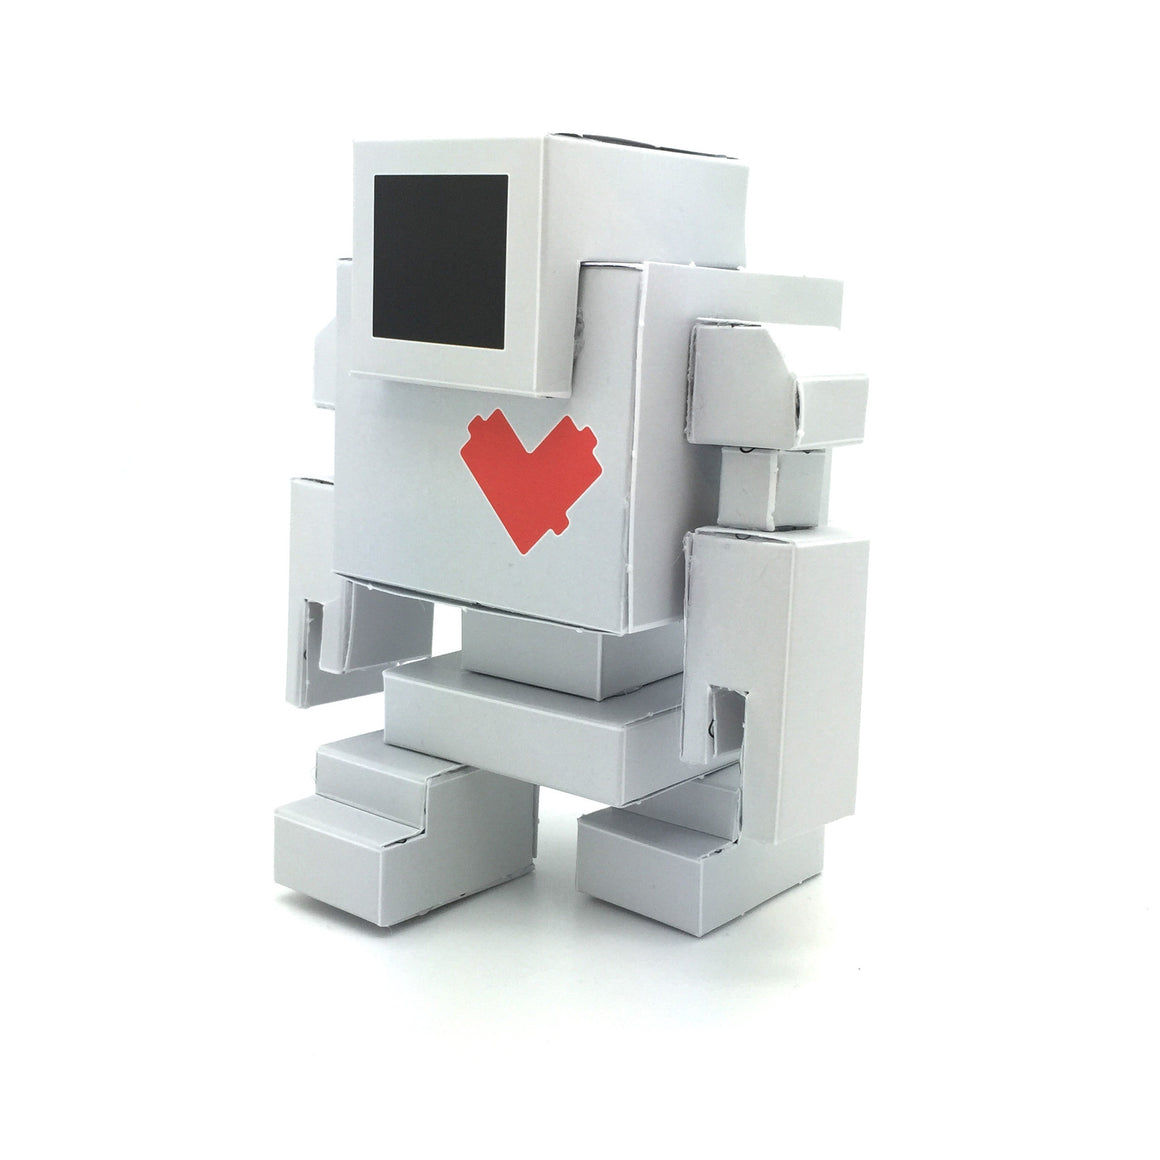 Lovebot Paper Craft Toy by Matthew Del Degan - Mindzai  - 1